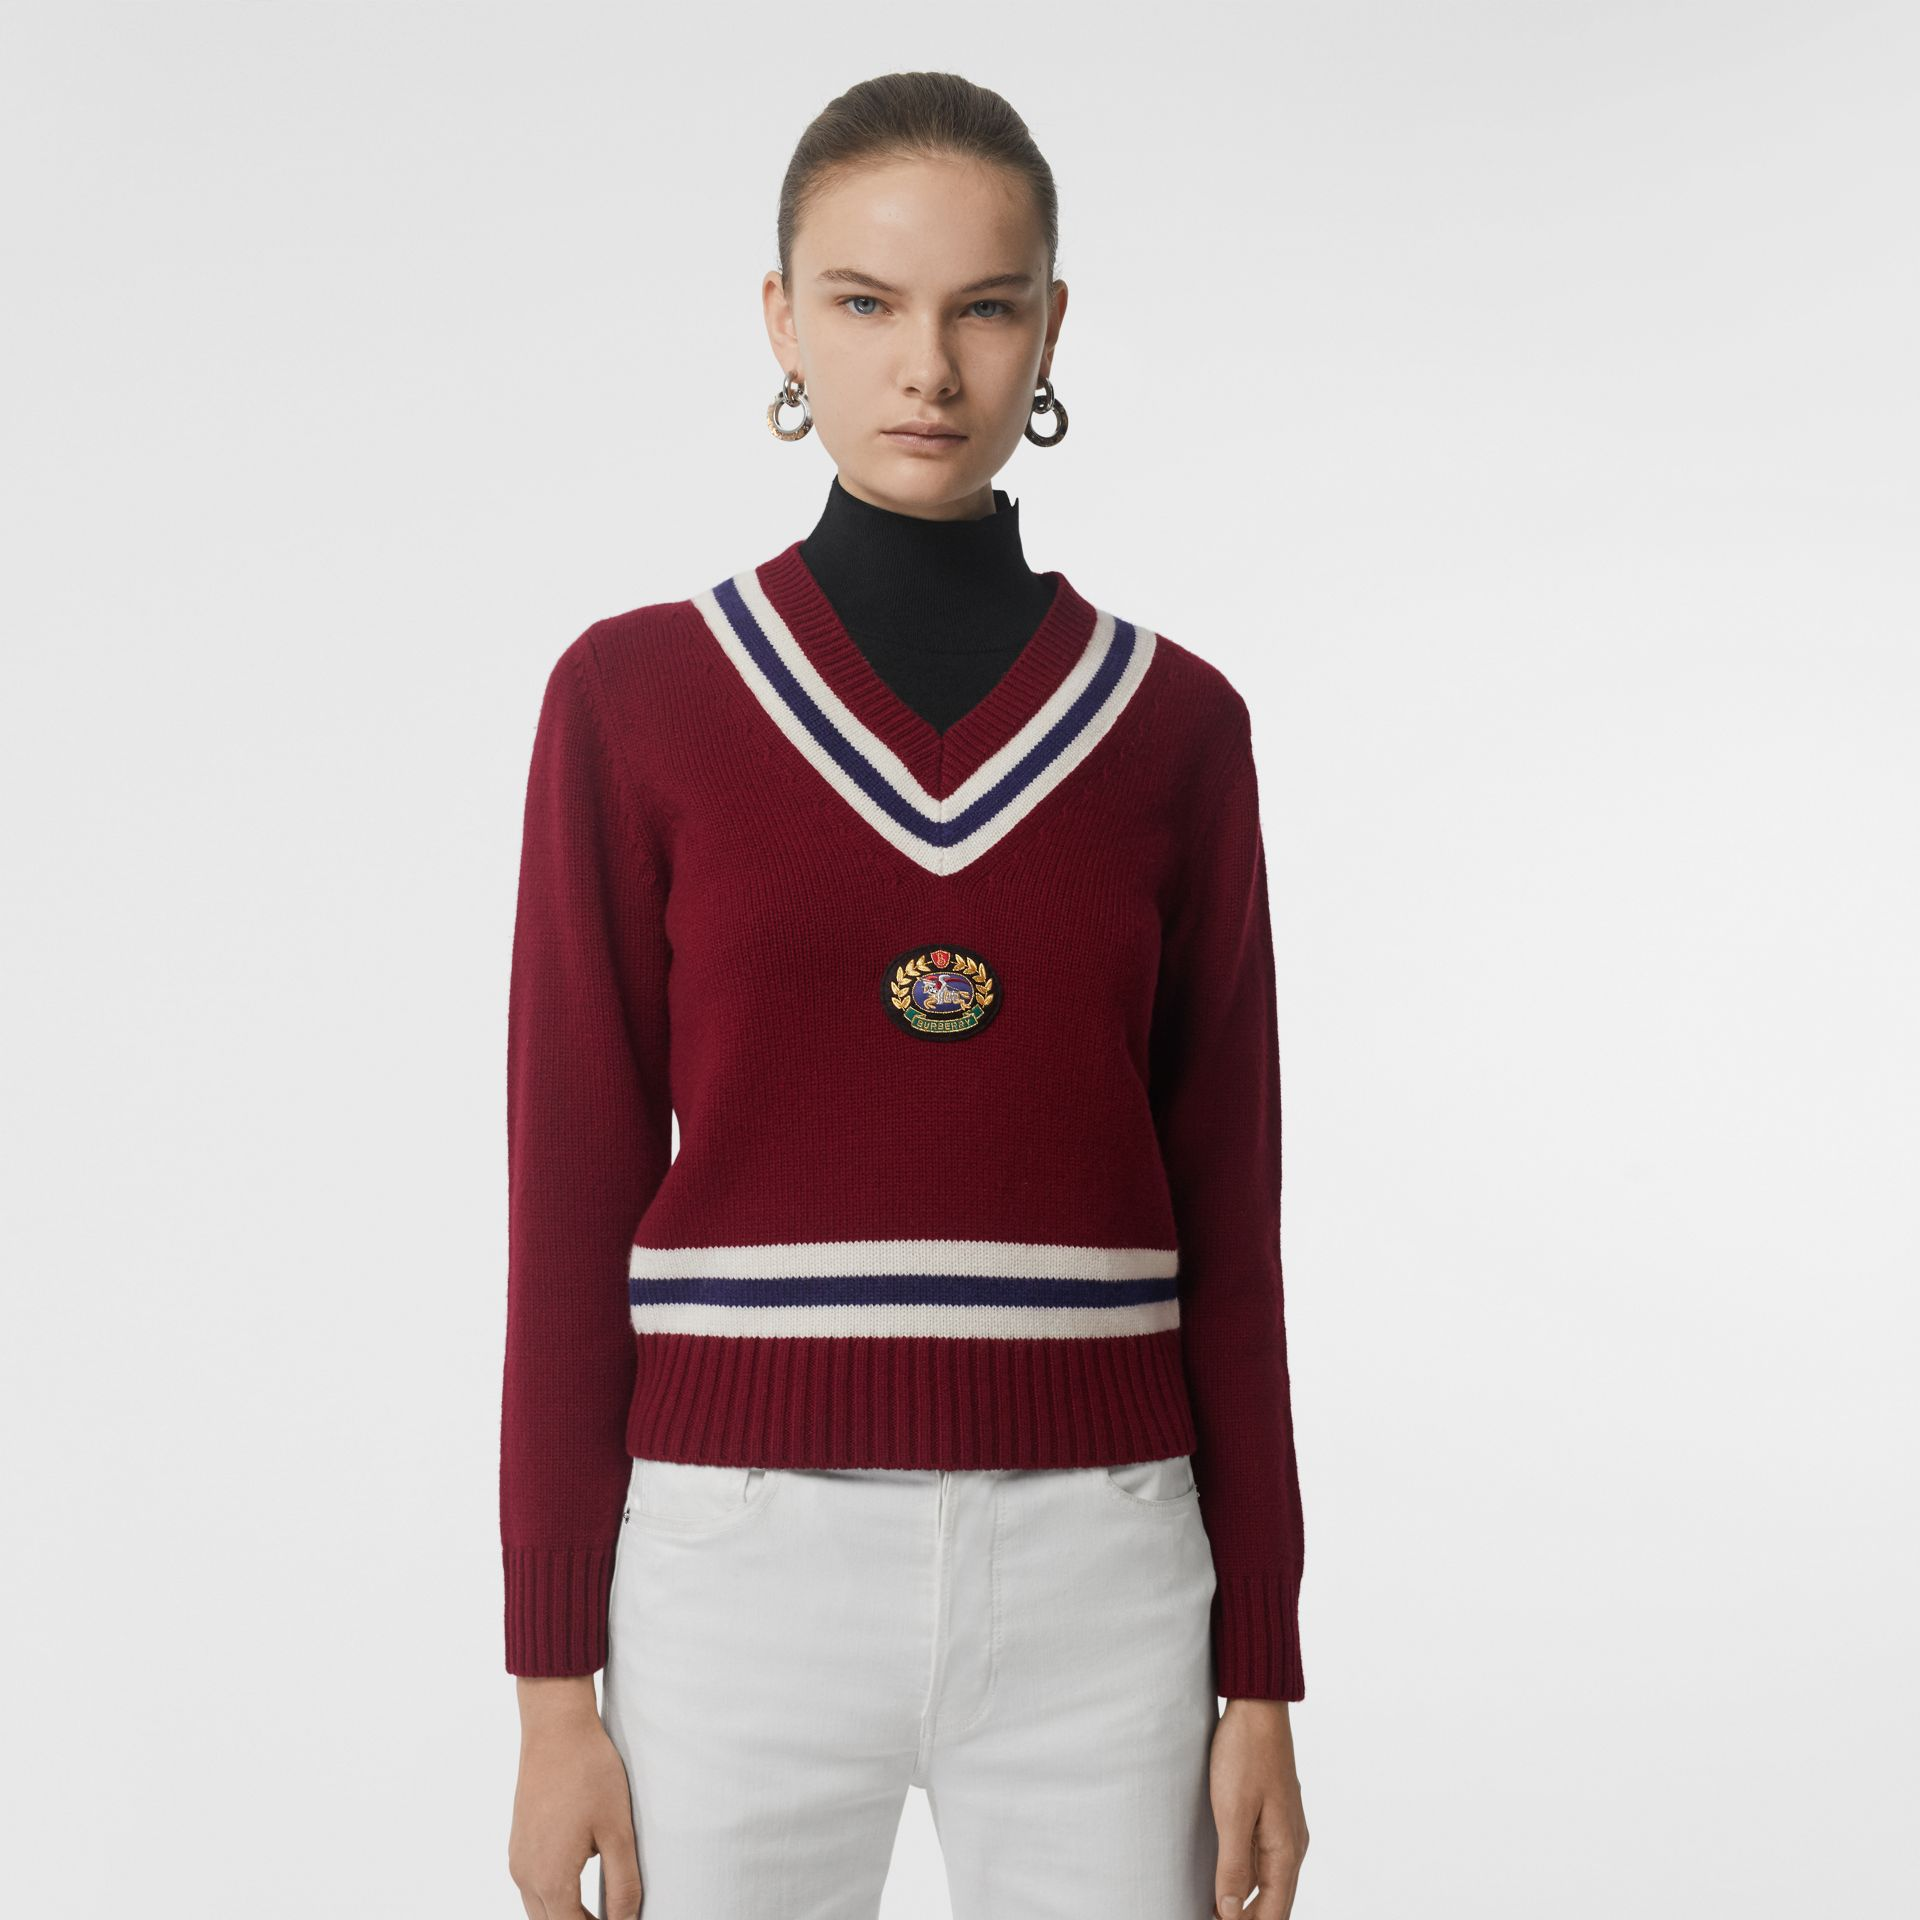 Embroidered Crest Wool Cashmere Sweater in Burgundy - Women | Burberry Australia - gallery image 4